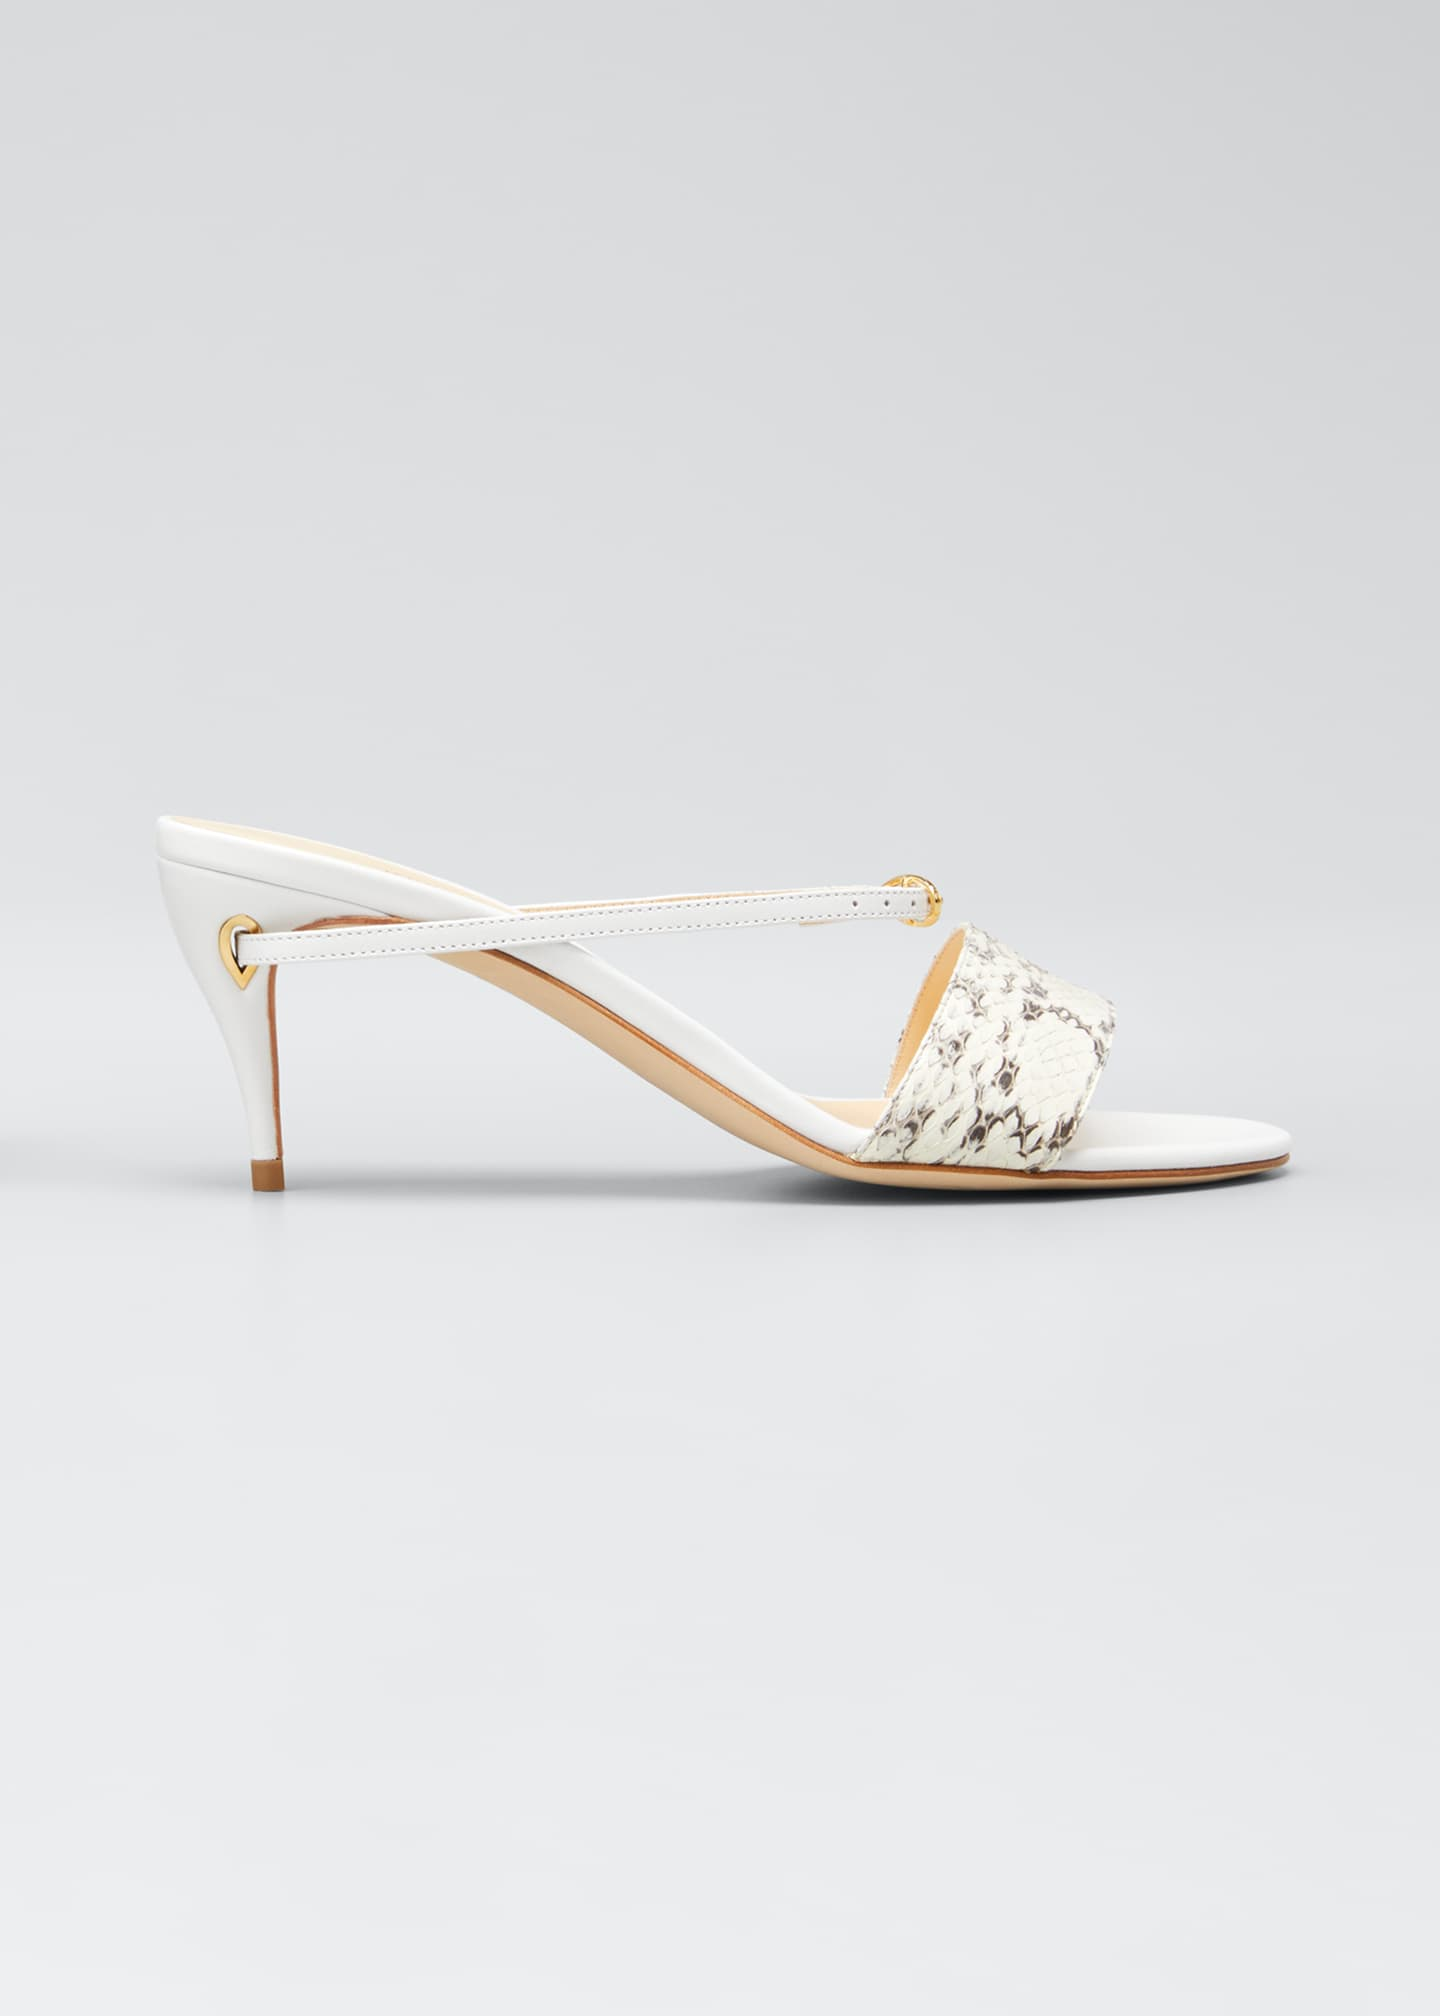 Jennifer Chamandi Andrea Snake/Leather Mule Sandals